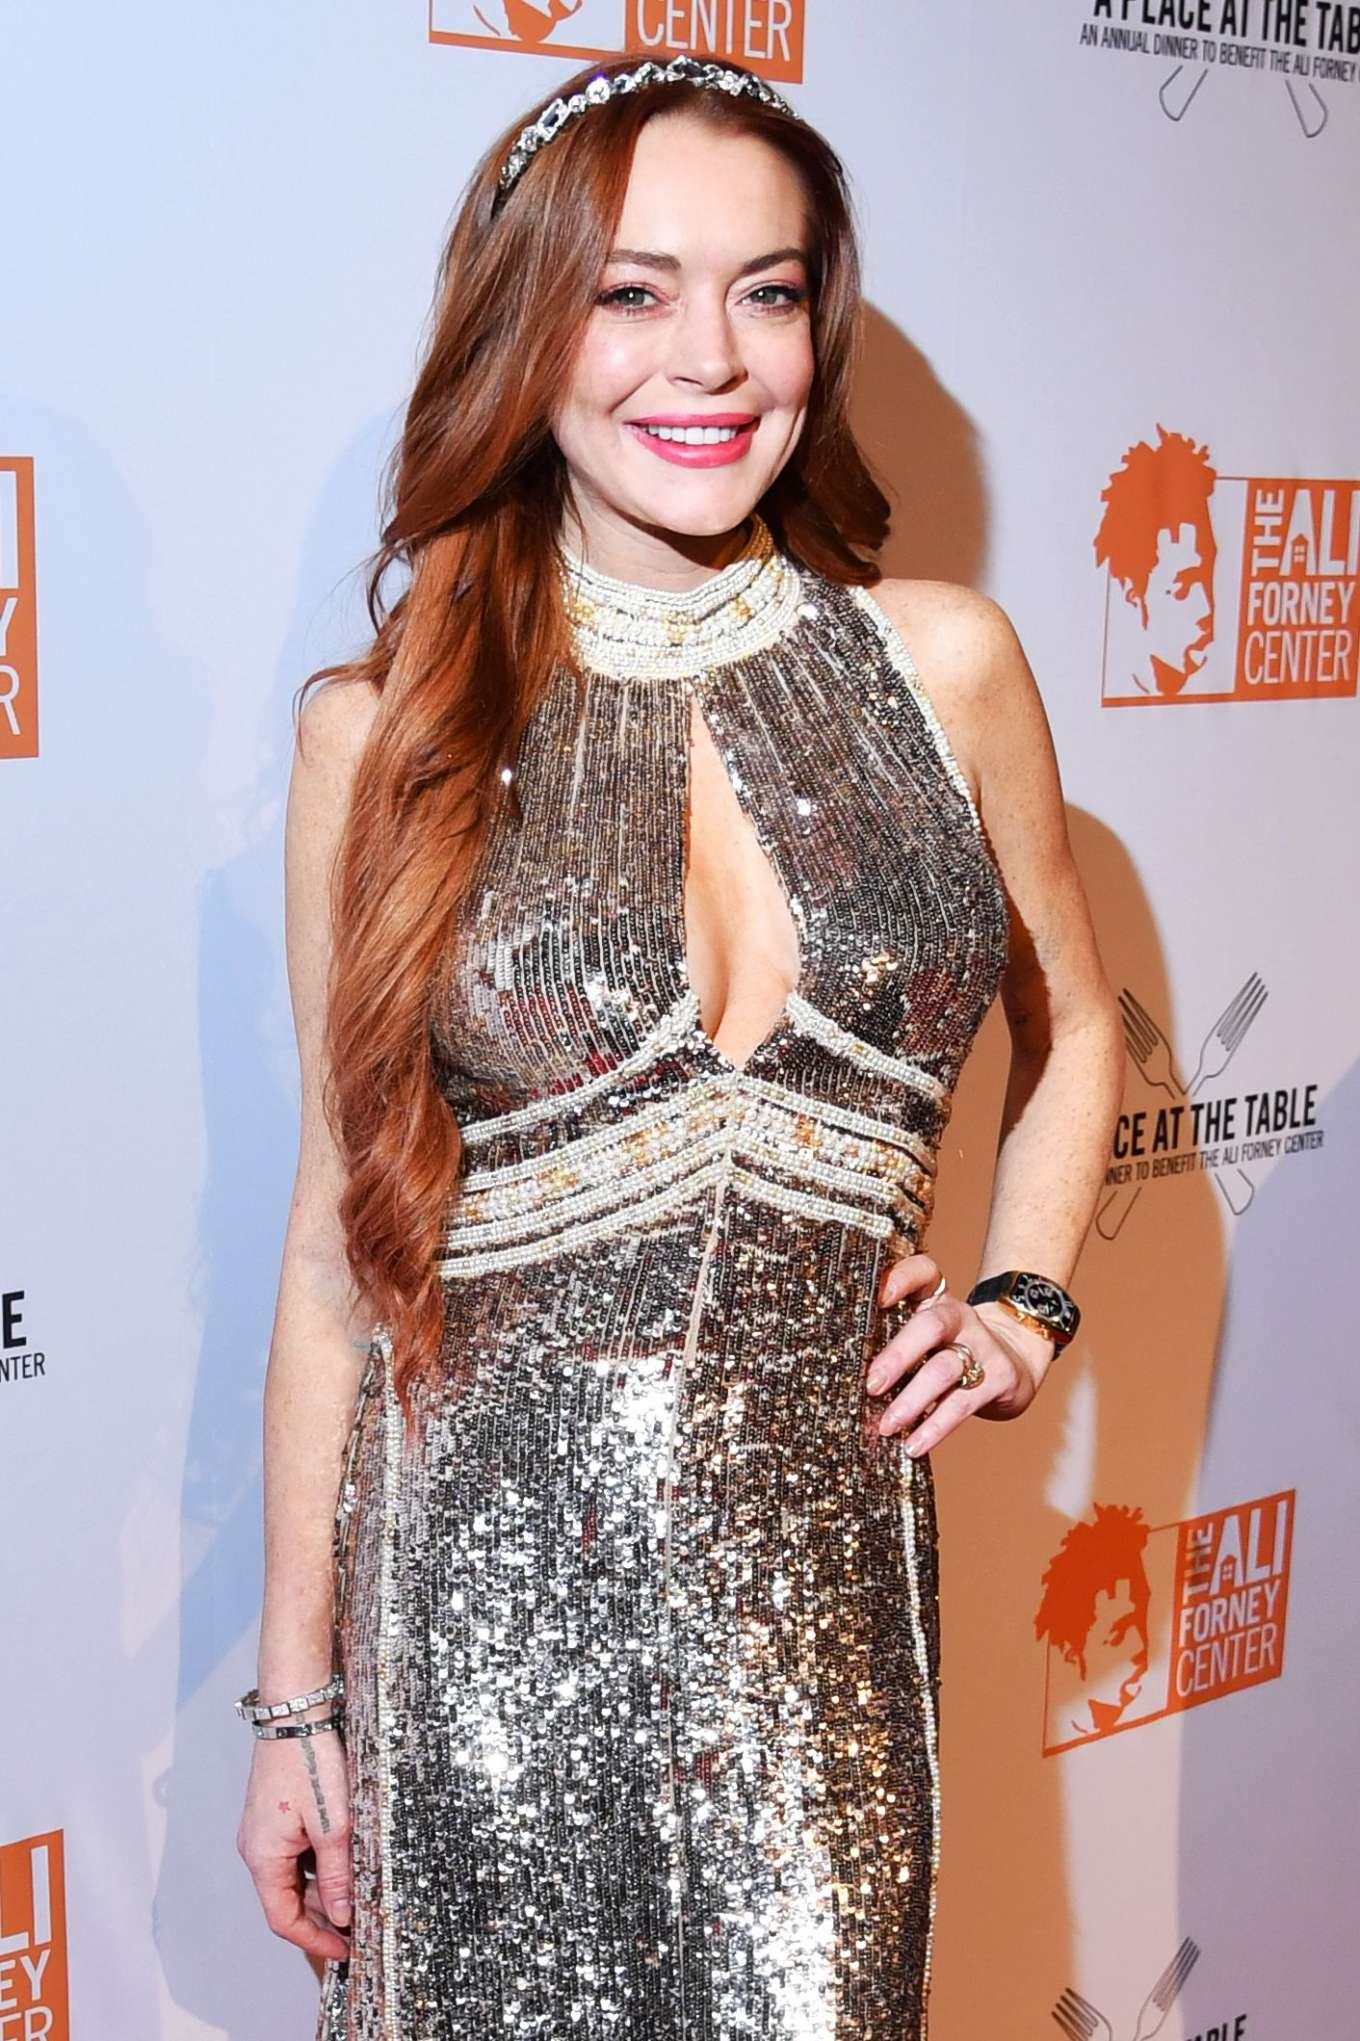 Lindsay Lohan 2019 : Lindsay Lohan – A Place at the Table: The Ali Forney Centers Annual Fall Gala-24